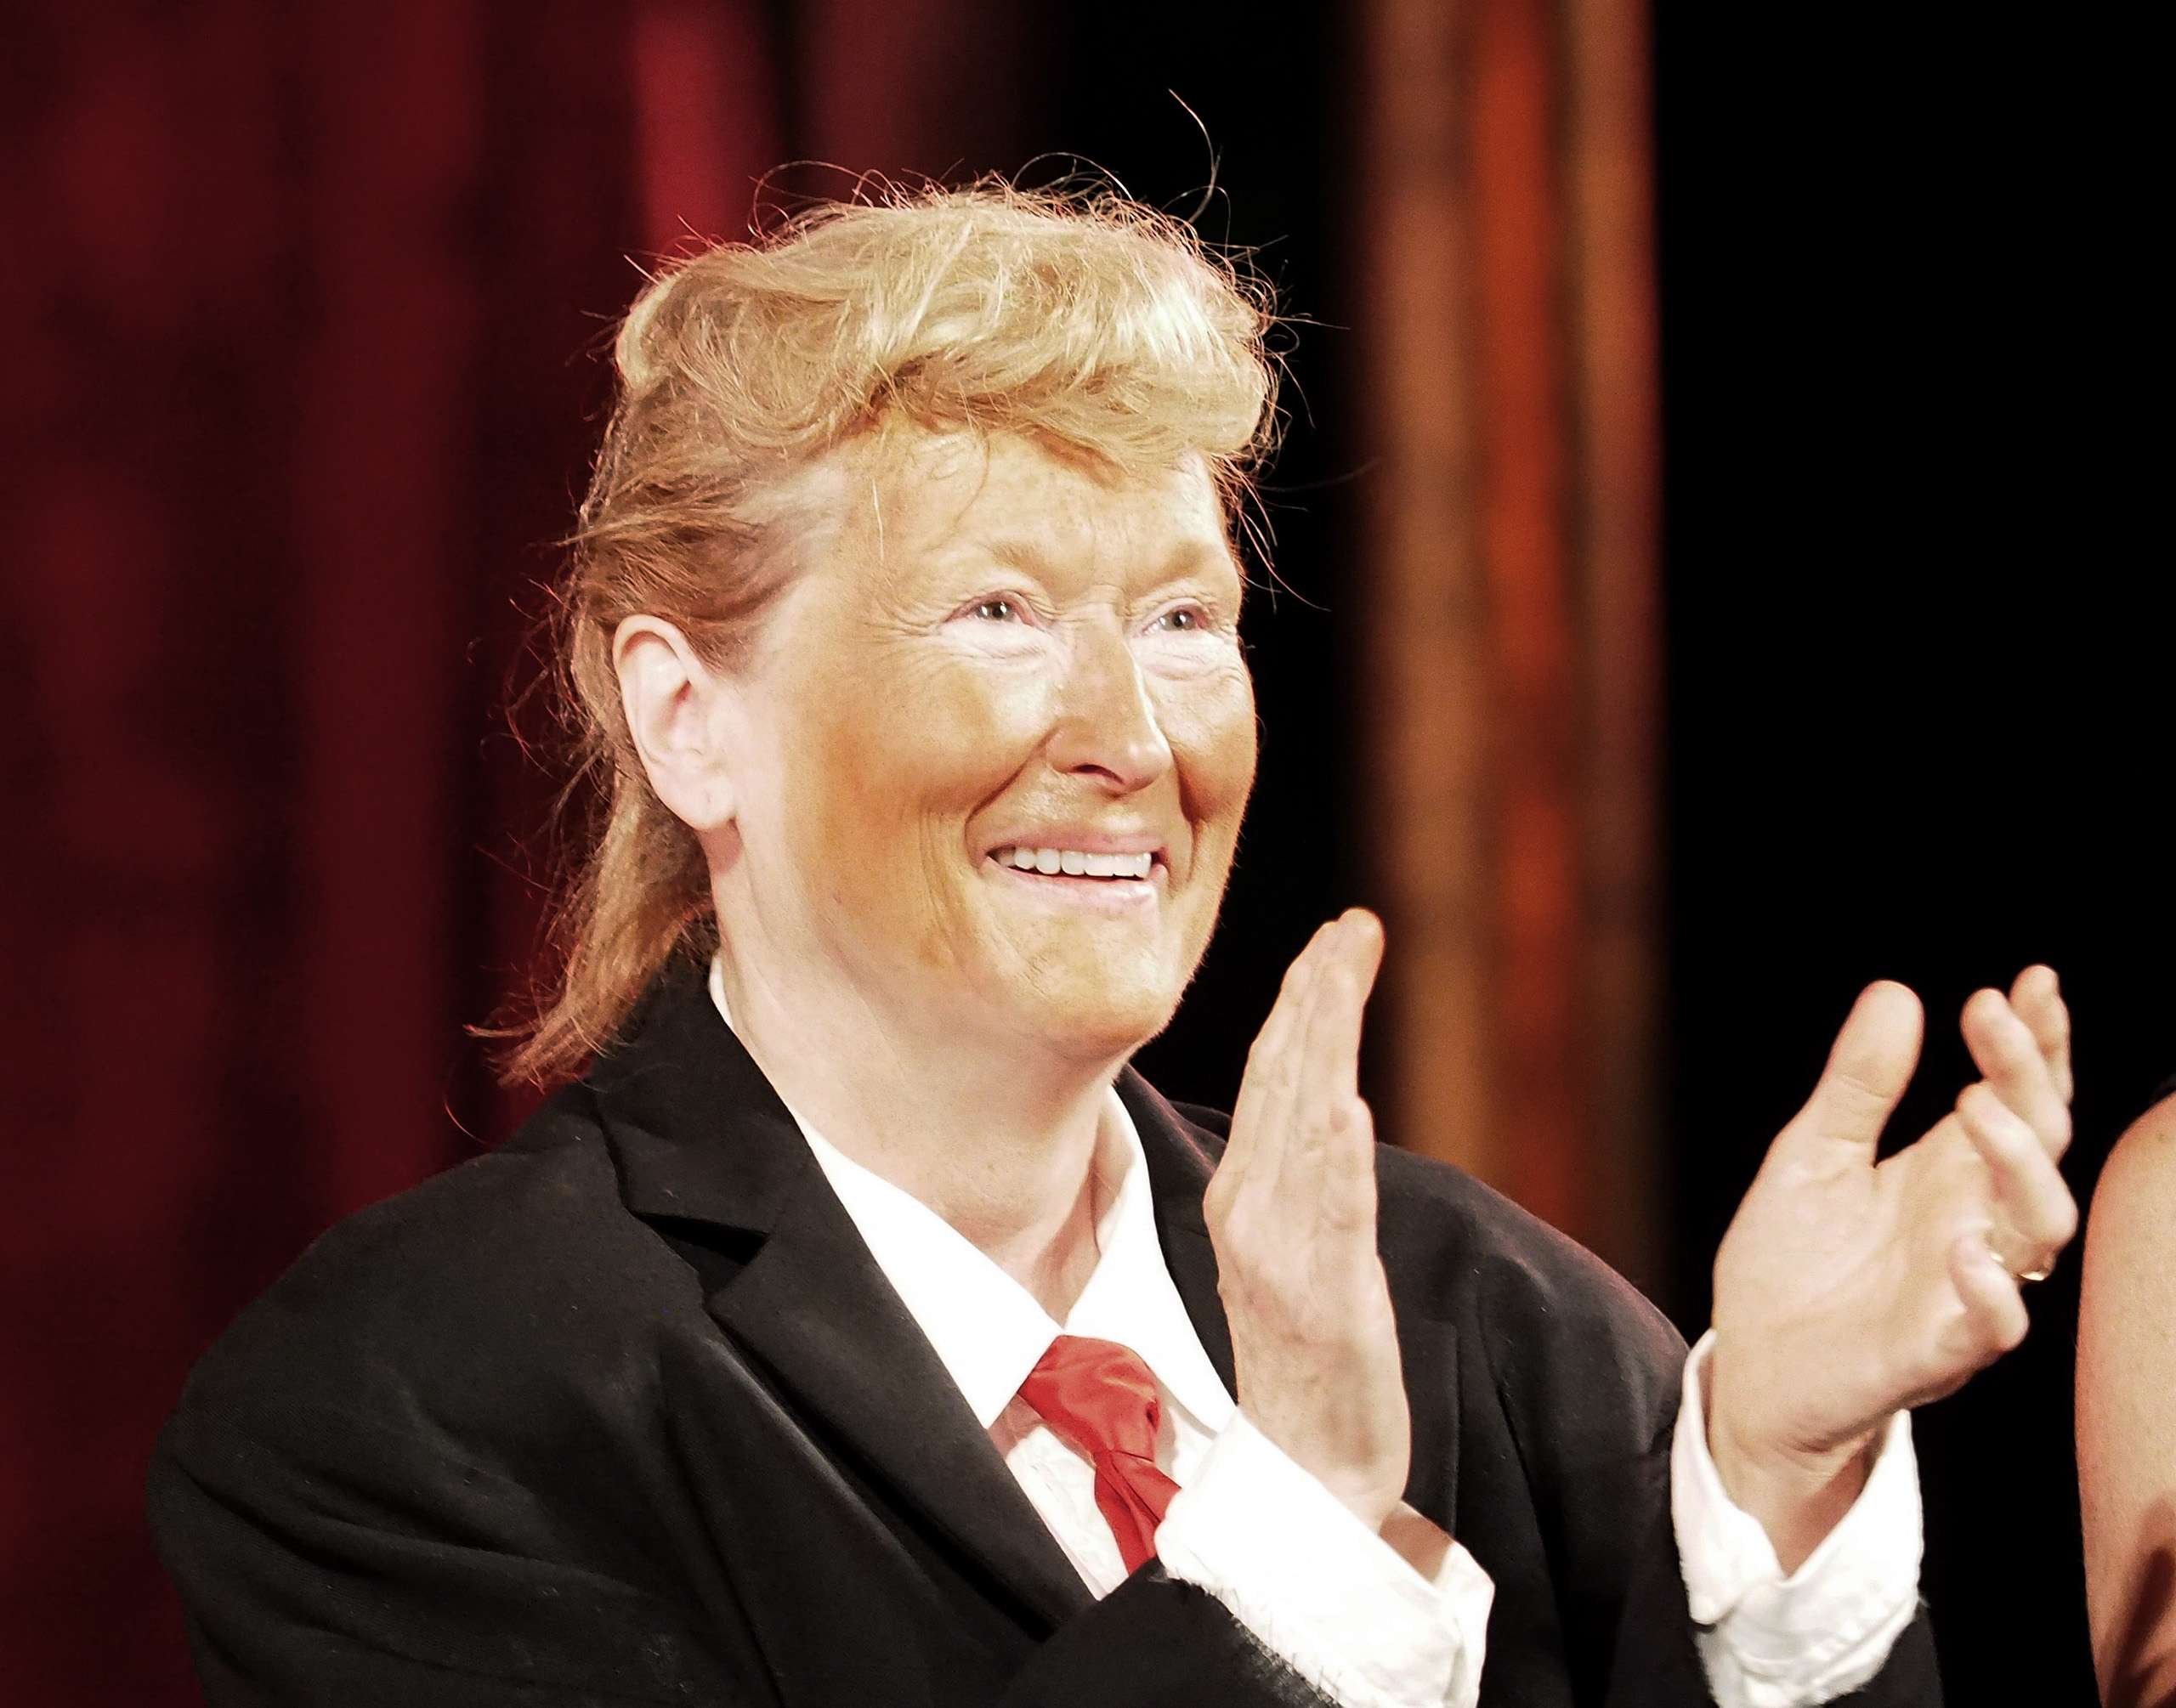 Meryl Streep, dressed as Donald Trump, performs onstage at the 2016 Public Theater Gala at Delacorte Theater in New York City on June 6, 2016.